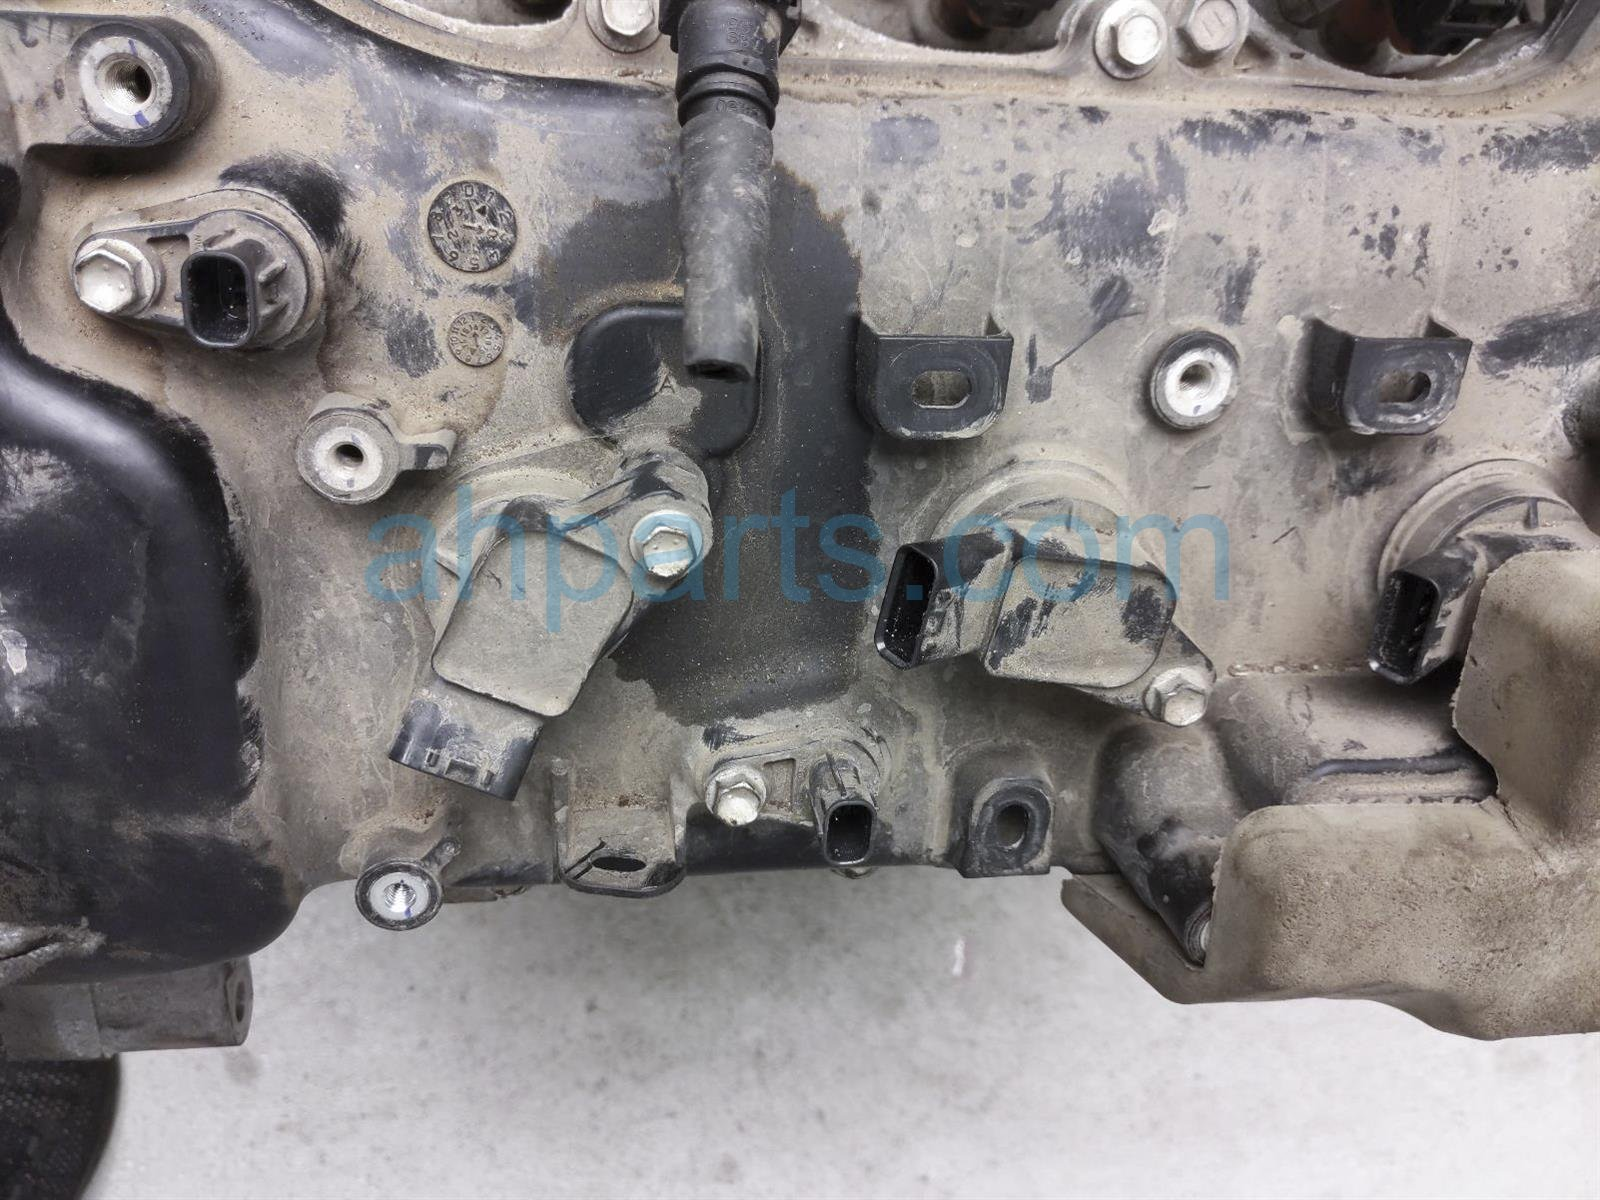 2017 Toyota Tacoma Motor / Engine = 70k Miles 19000 0P400 Replacement